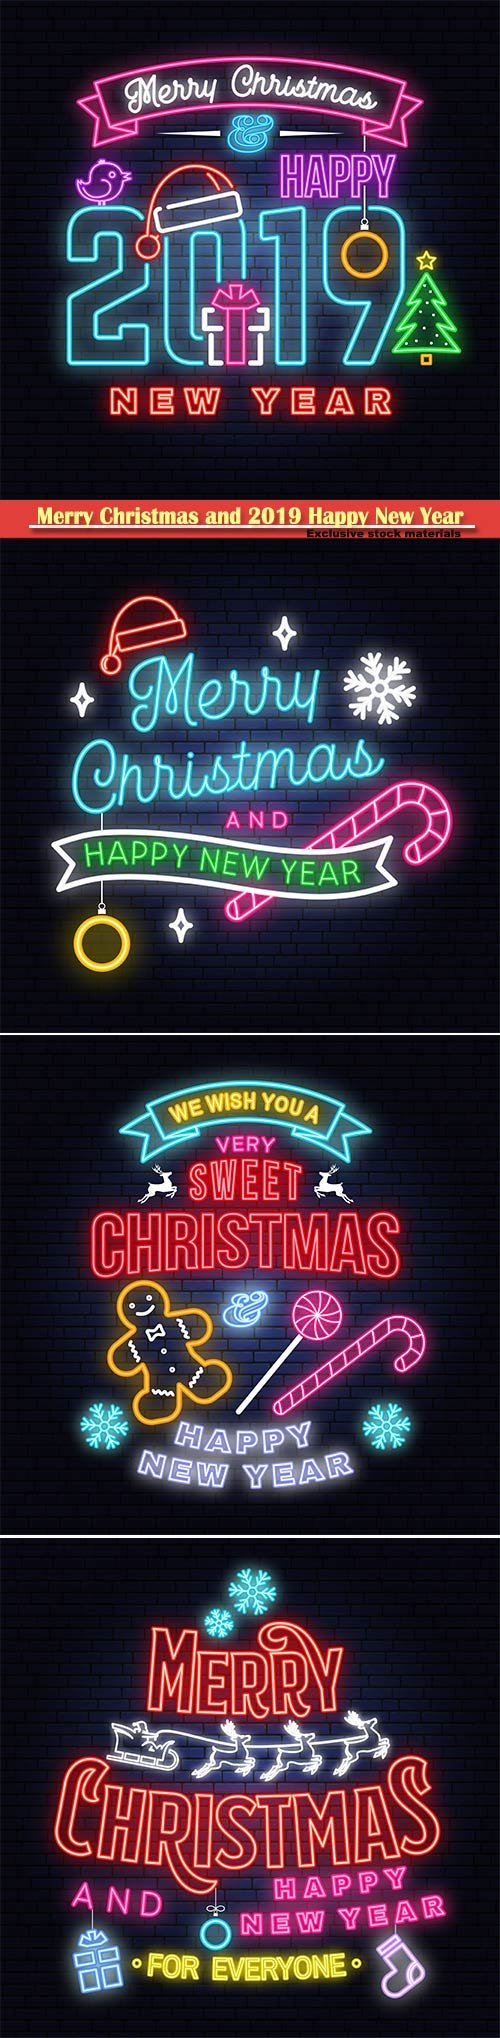 Merry Christmas and 2019 Happy New Year neon sign, emblem, bright signboard, light banner